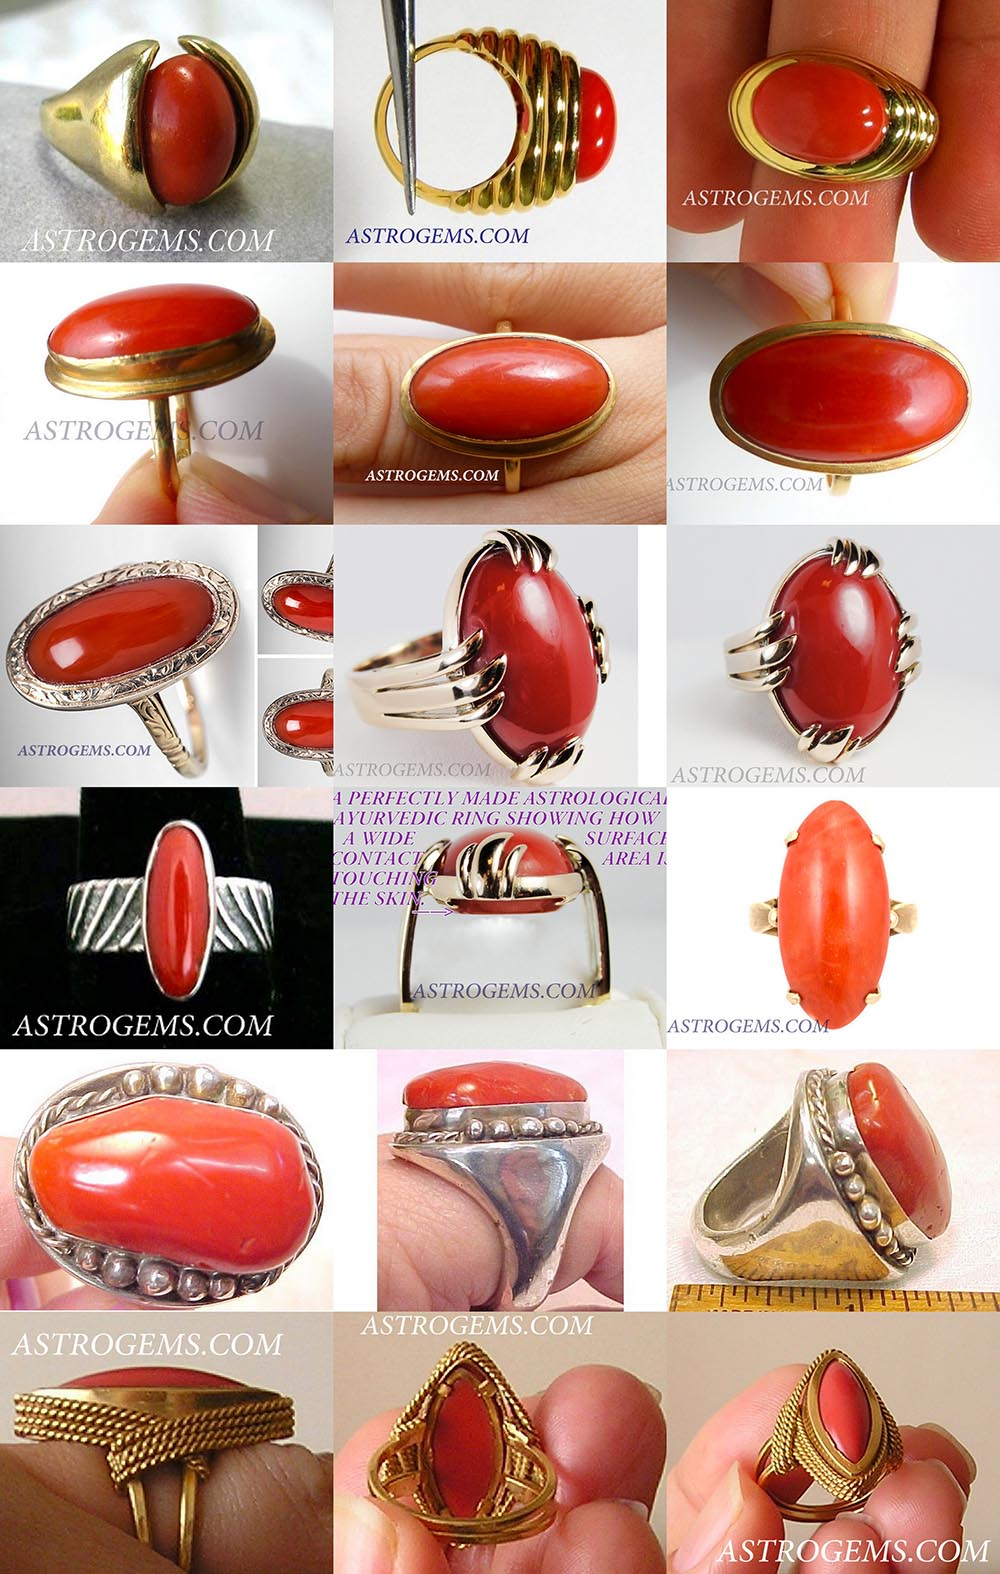 red coral astrological rings